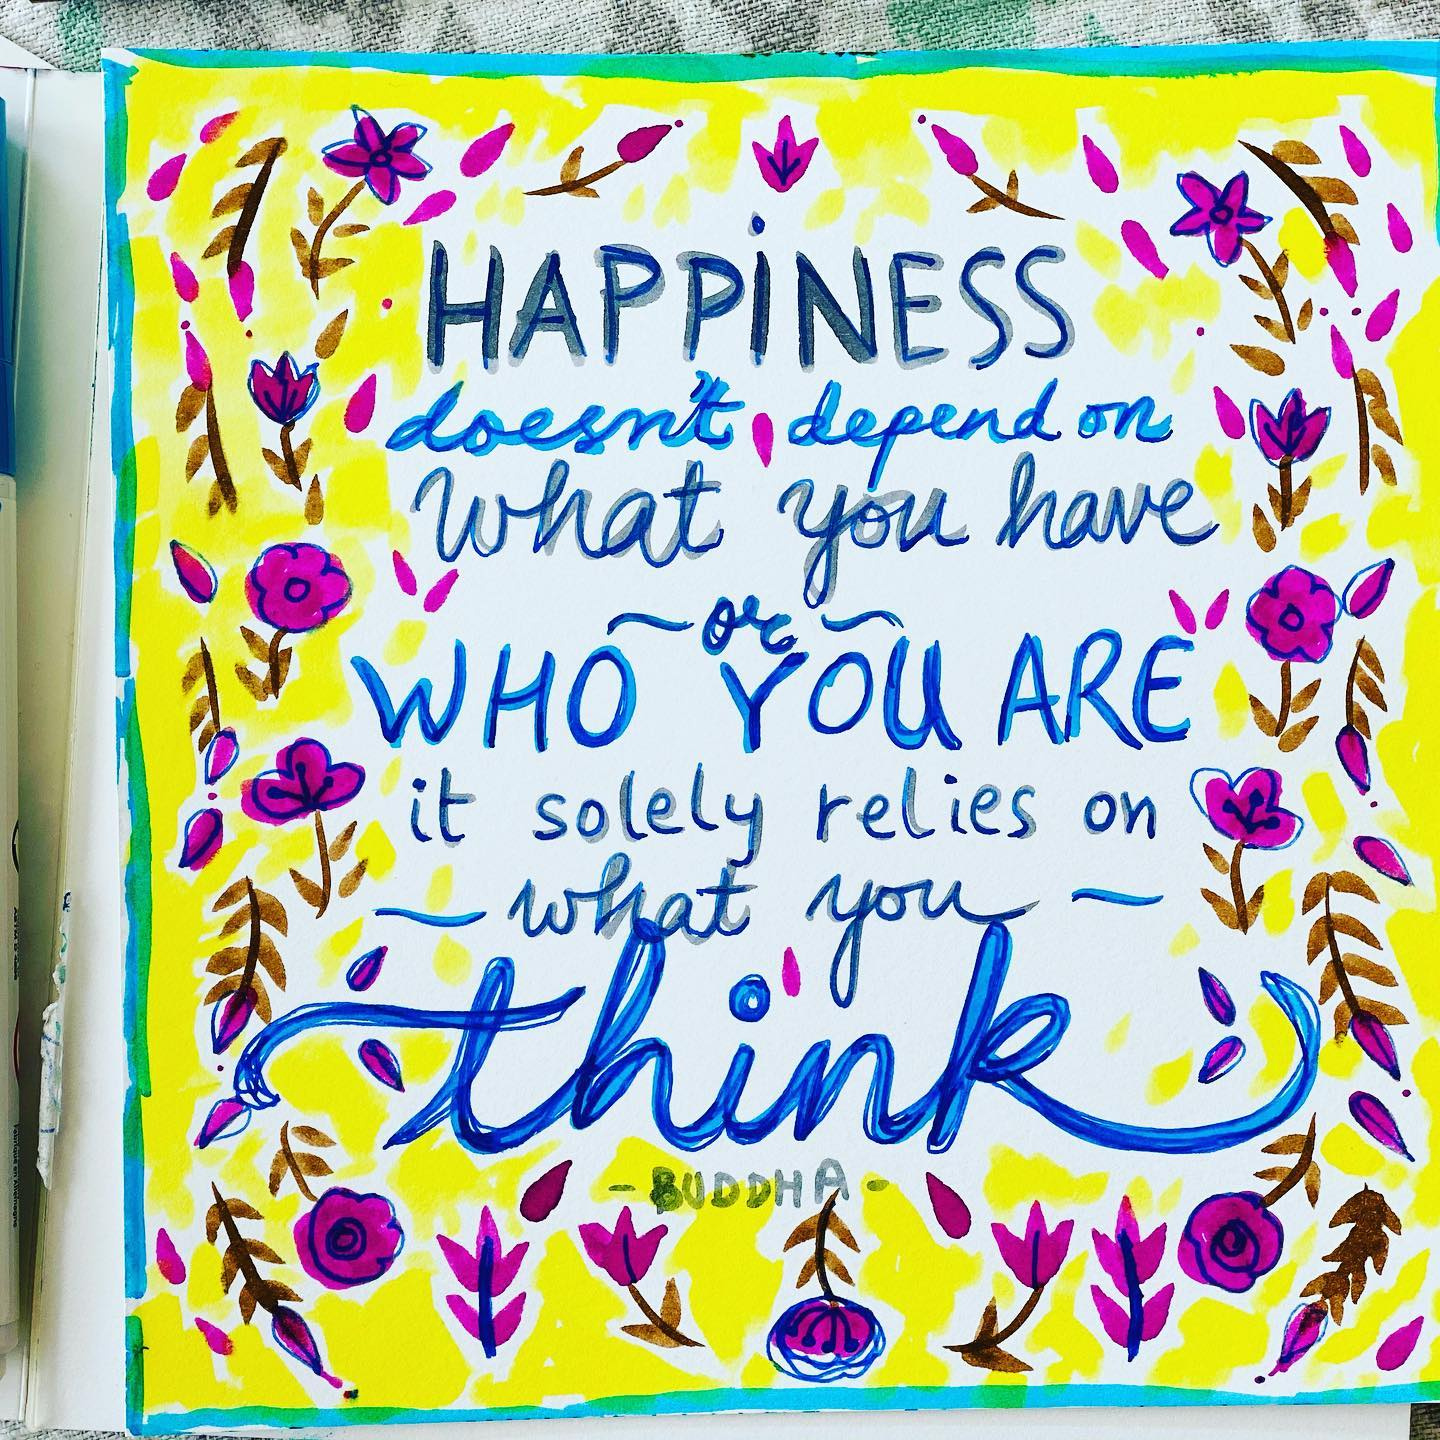 Happiness doesn't depend on what you have or who you are, it solely relies on what you think!  ? Buddha